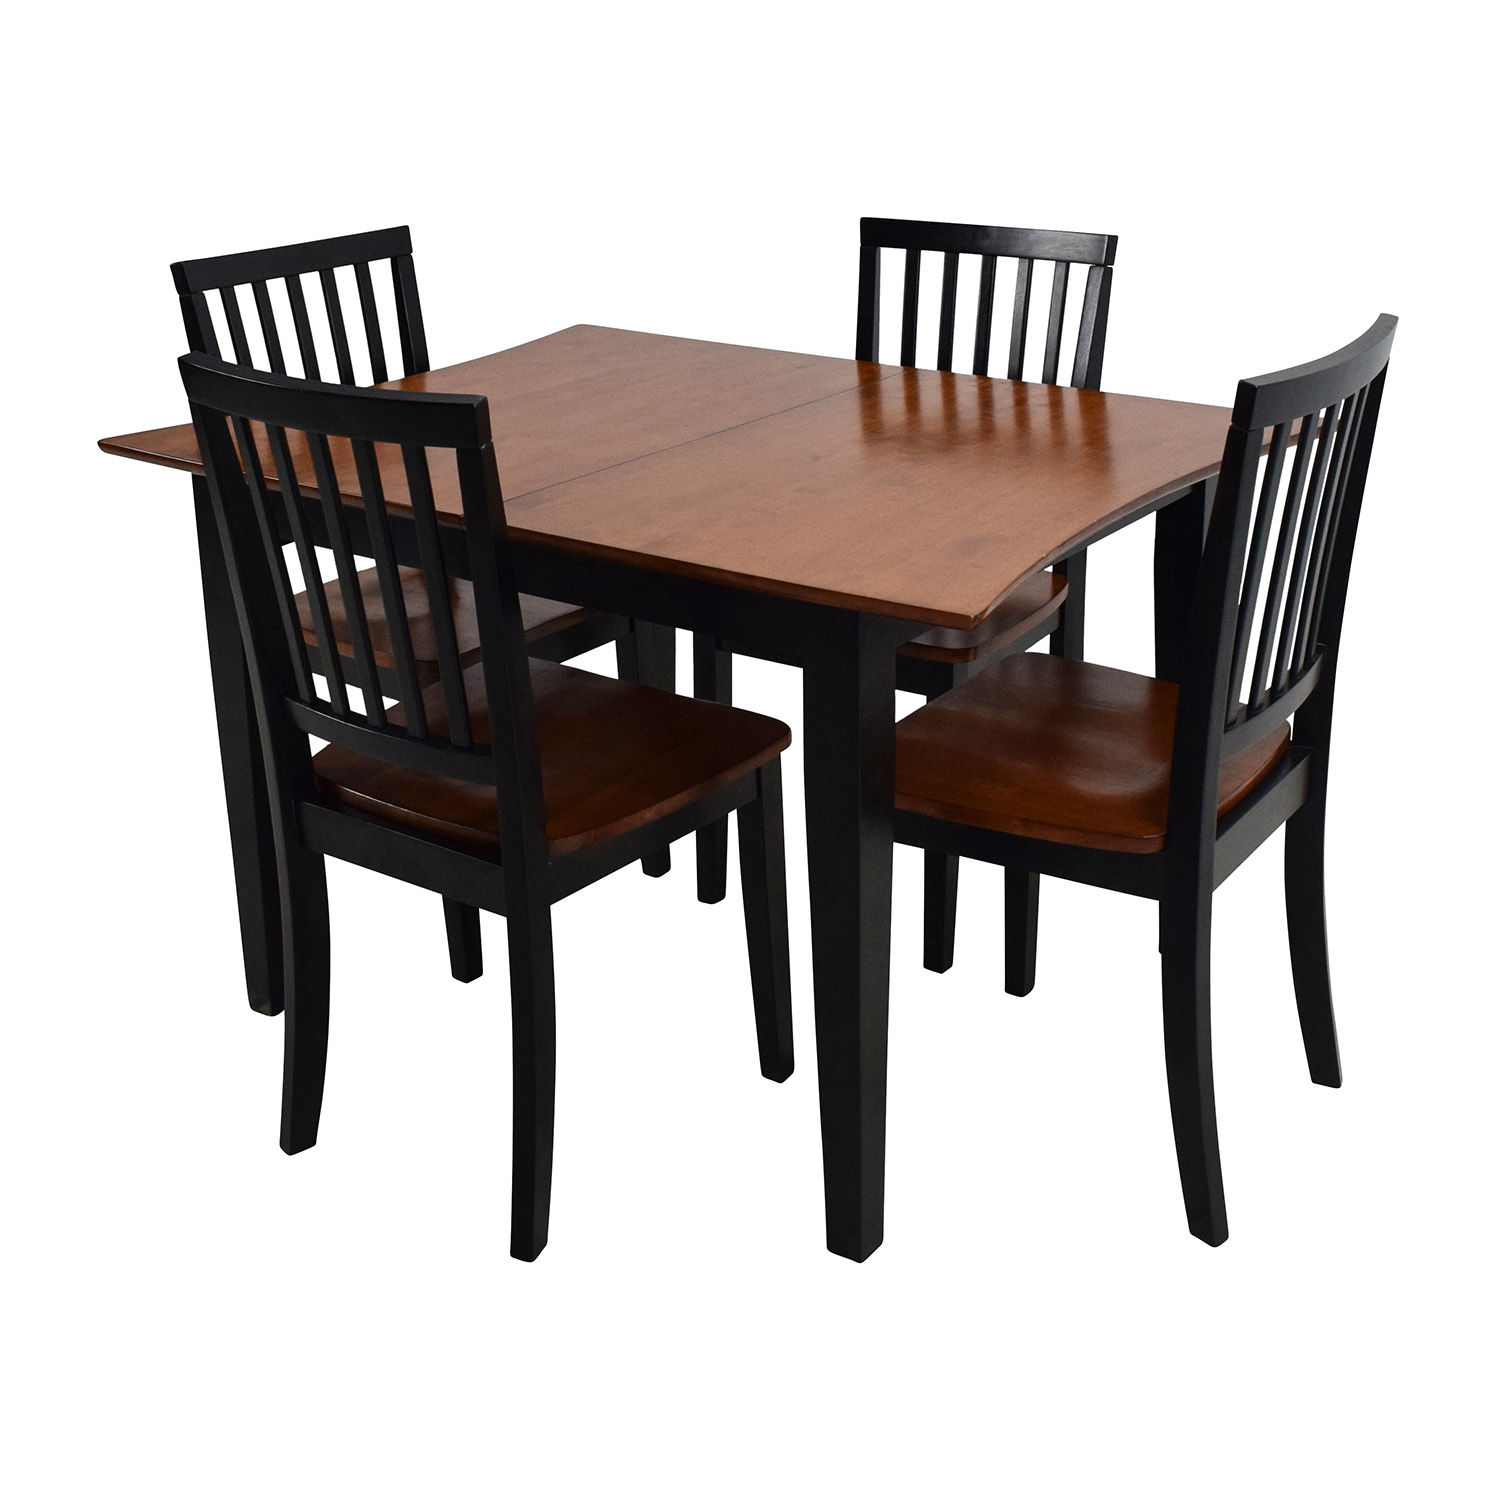 Bobs Discount Furniture Extendable Dining Set Second Hand